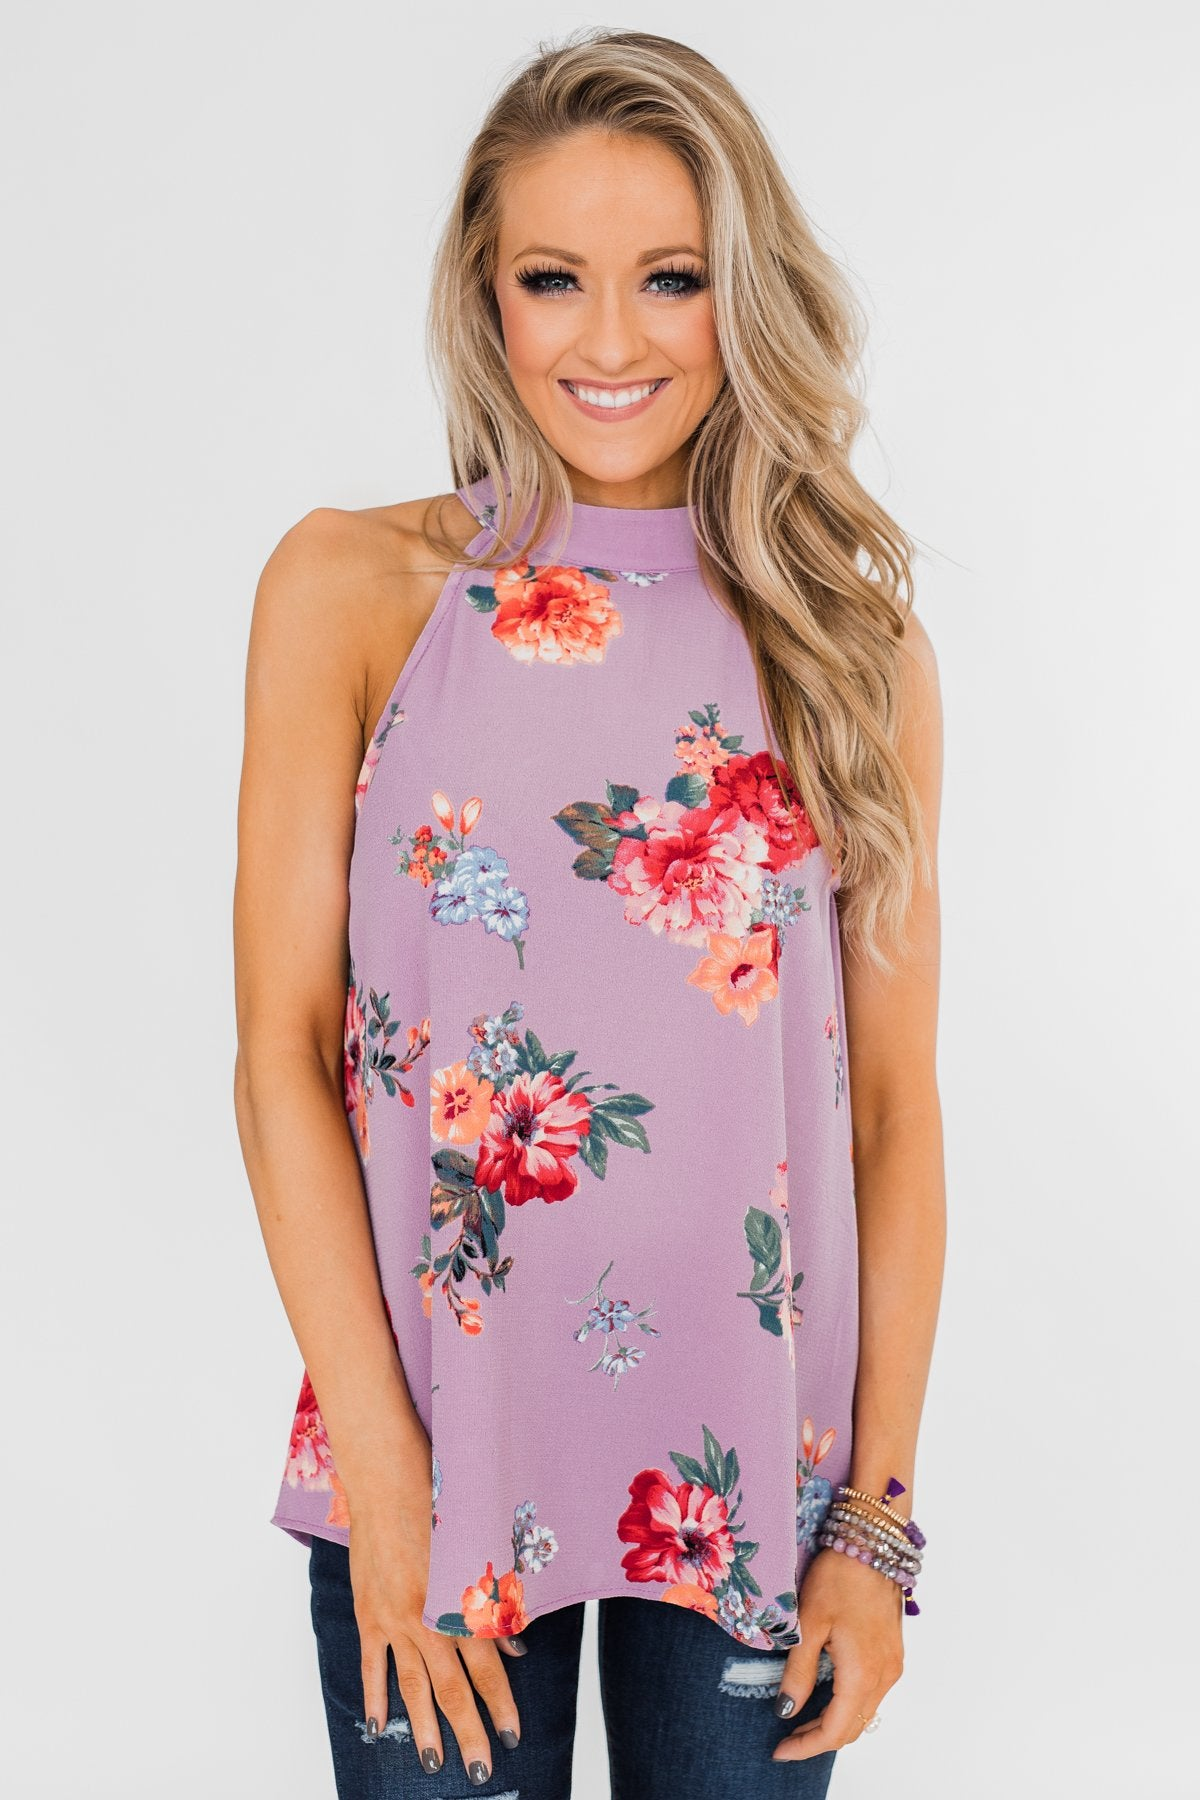 Flourish in Floral Halter Tank Top- Orchid